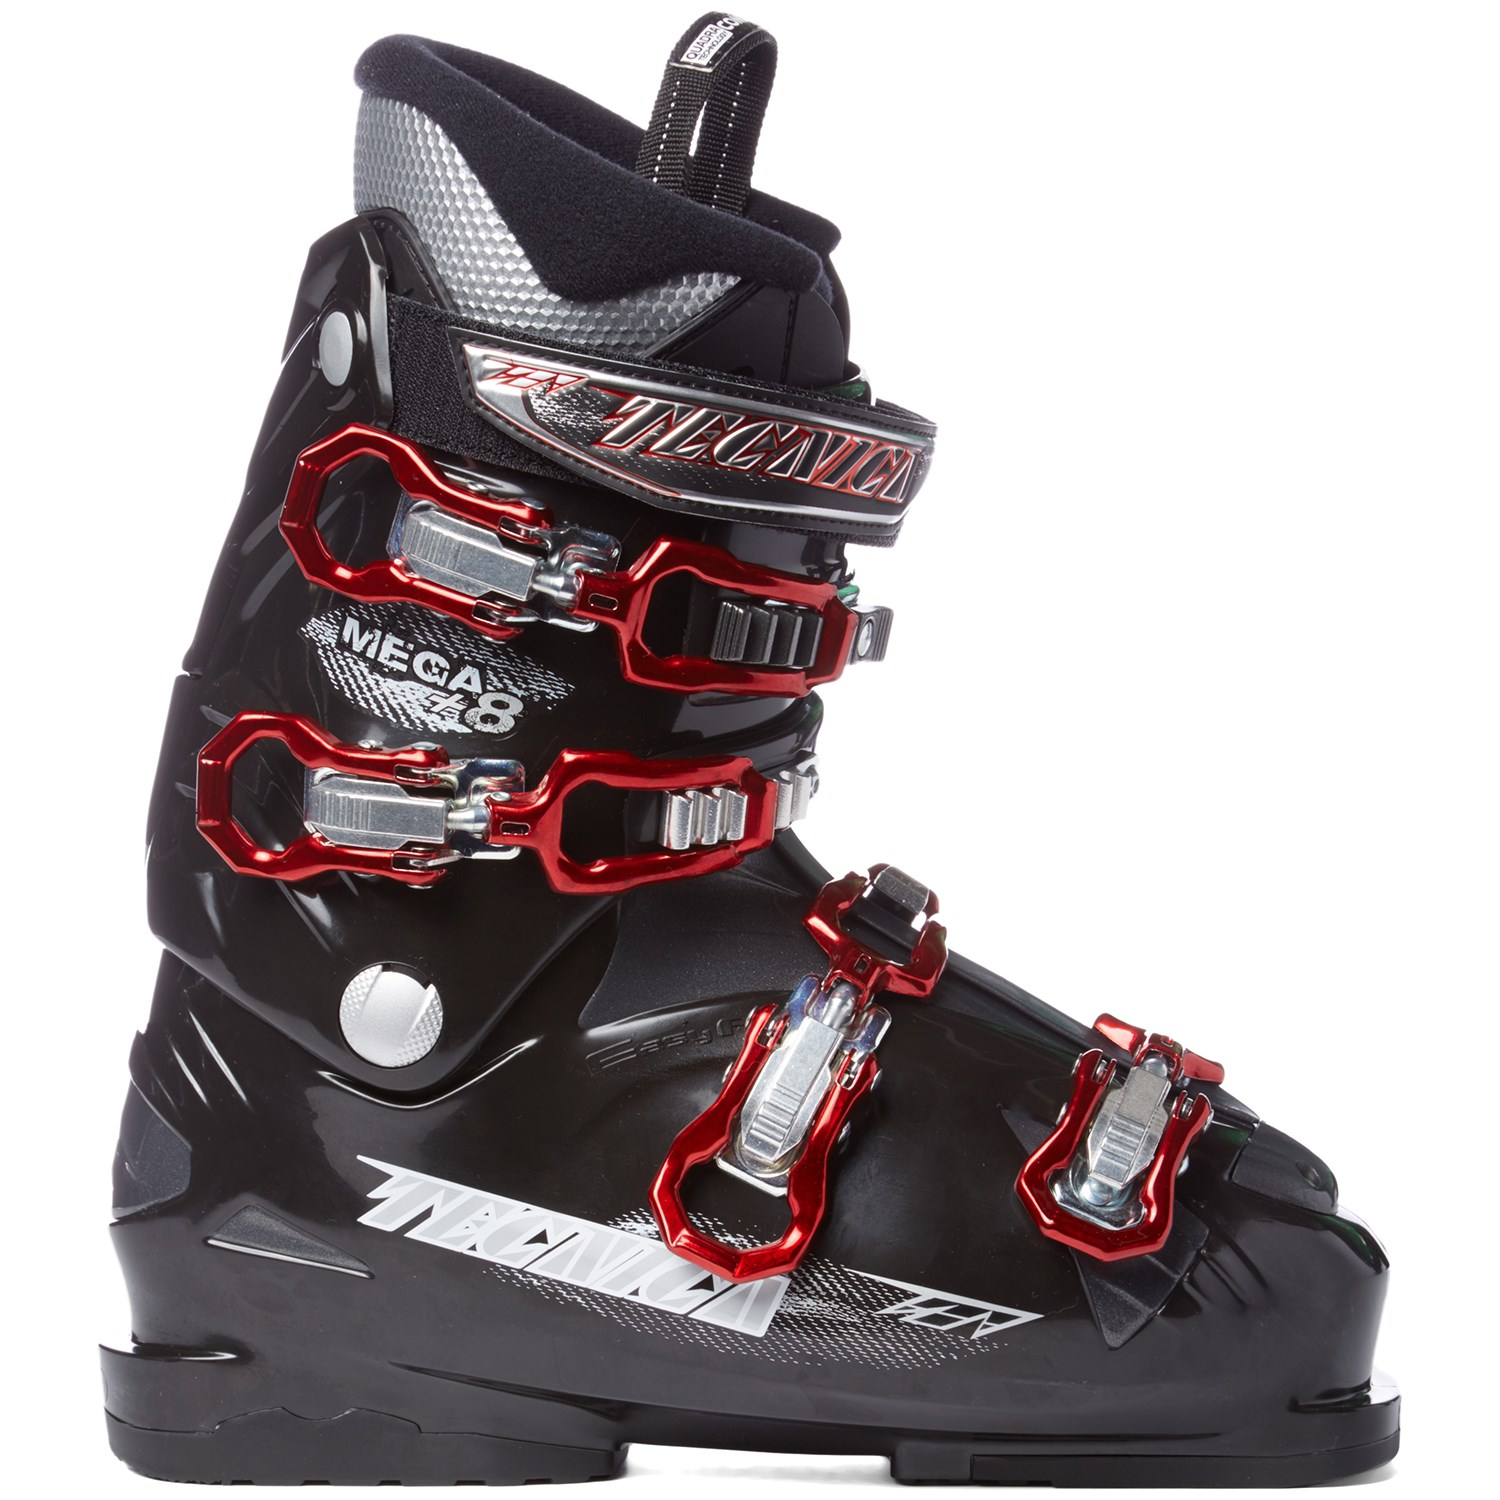 Head Rev 78 Ski Package W/ Bindings + Tecnica Mega+ 8 Ski